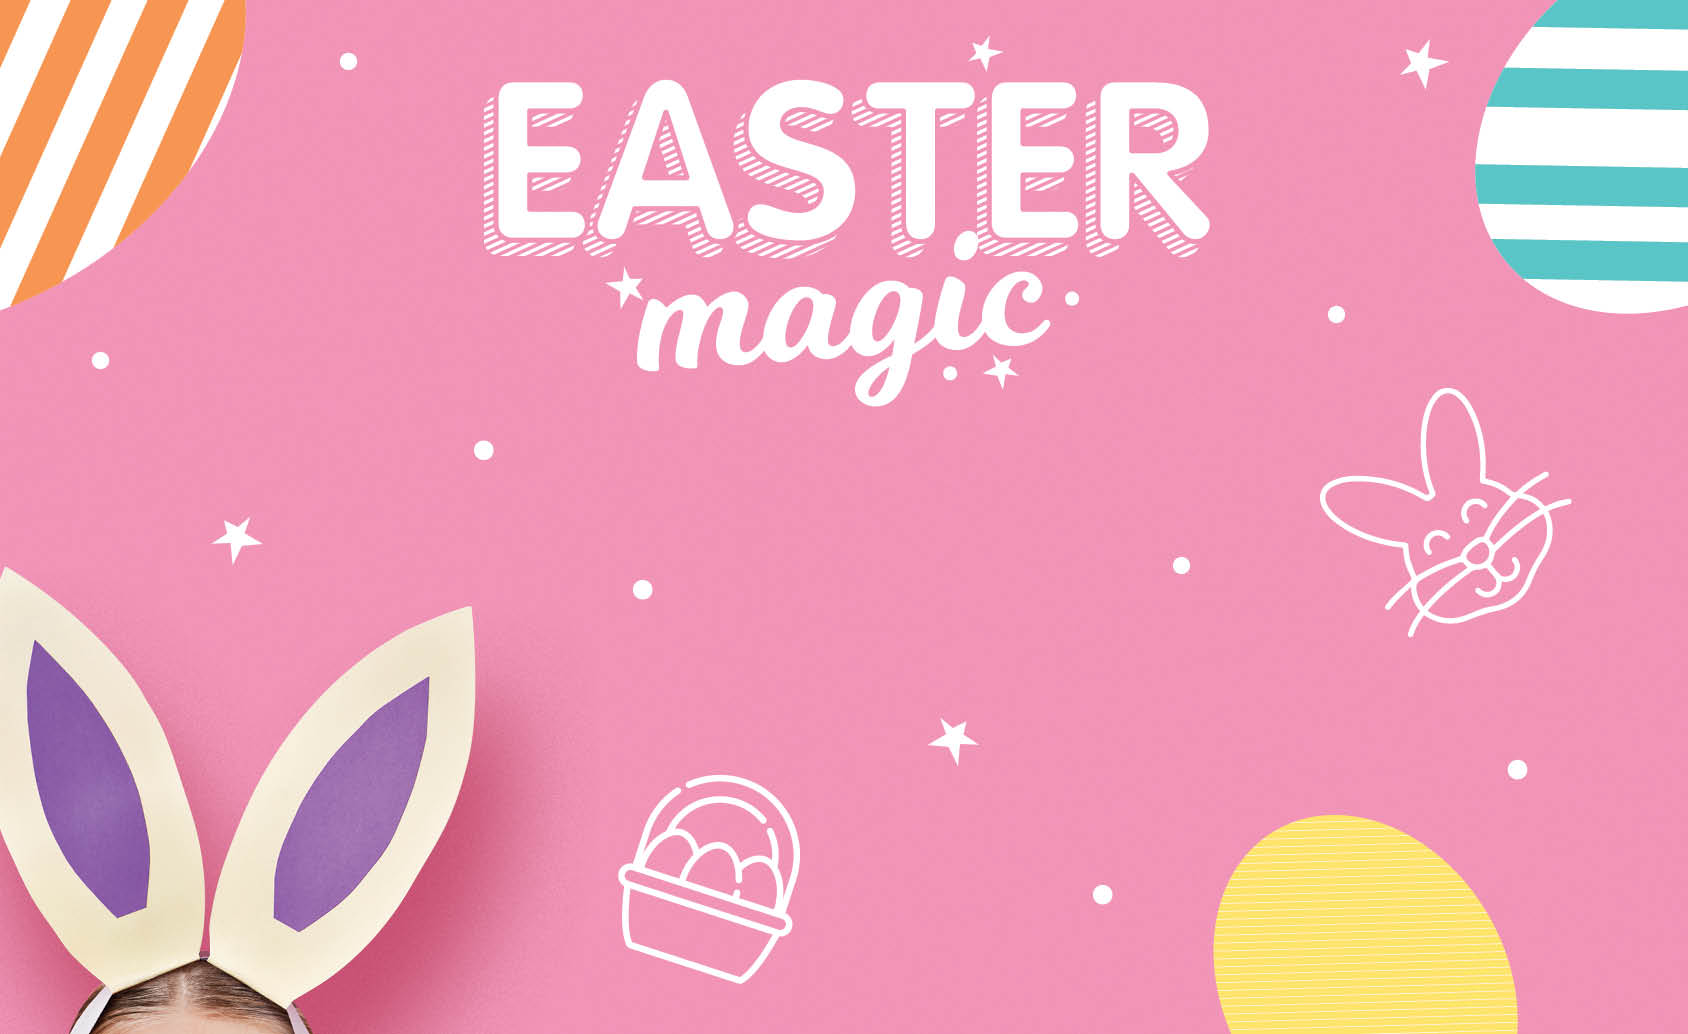 CH2905_Charter Hall_National Easter Campaign_Web Tiles_NEW_@2-844x517-4